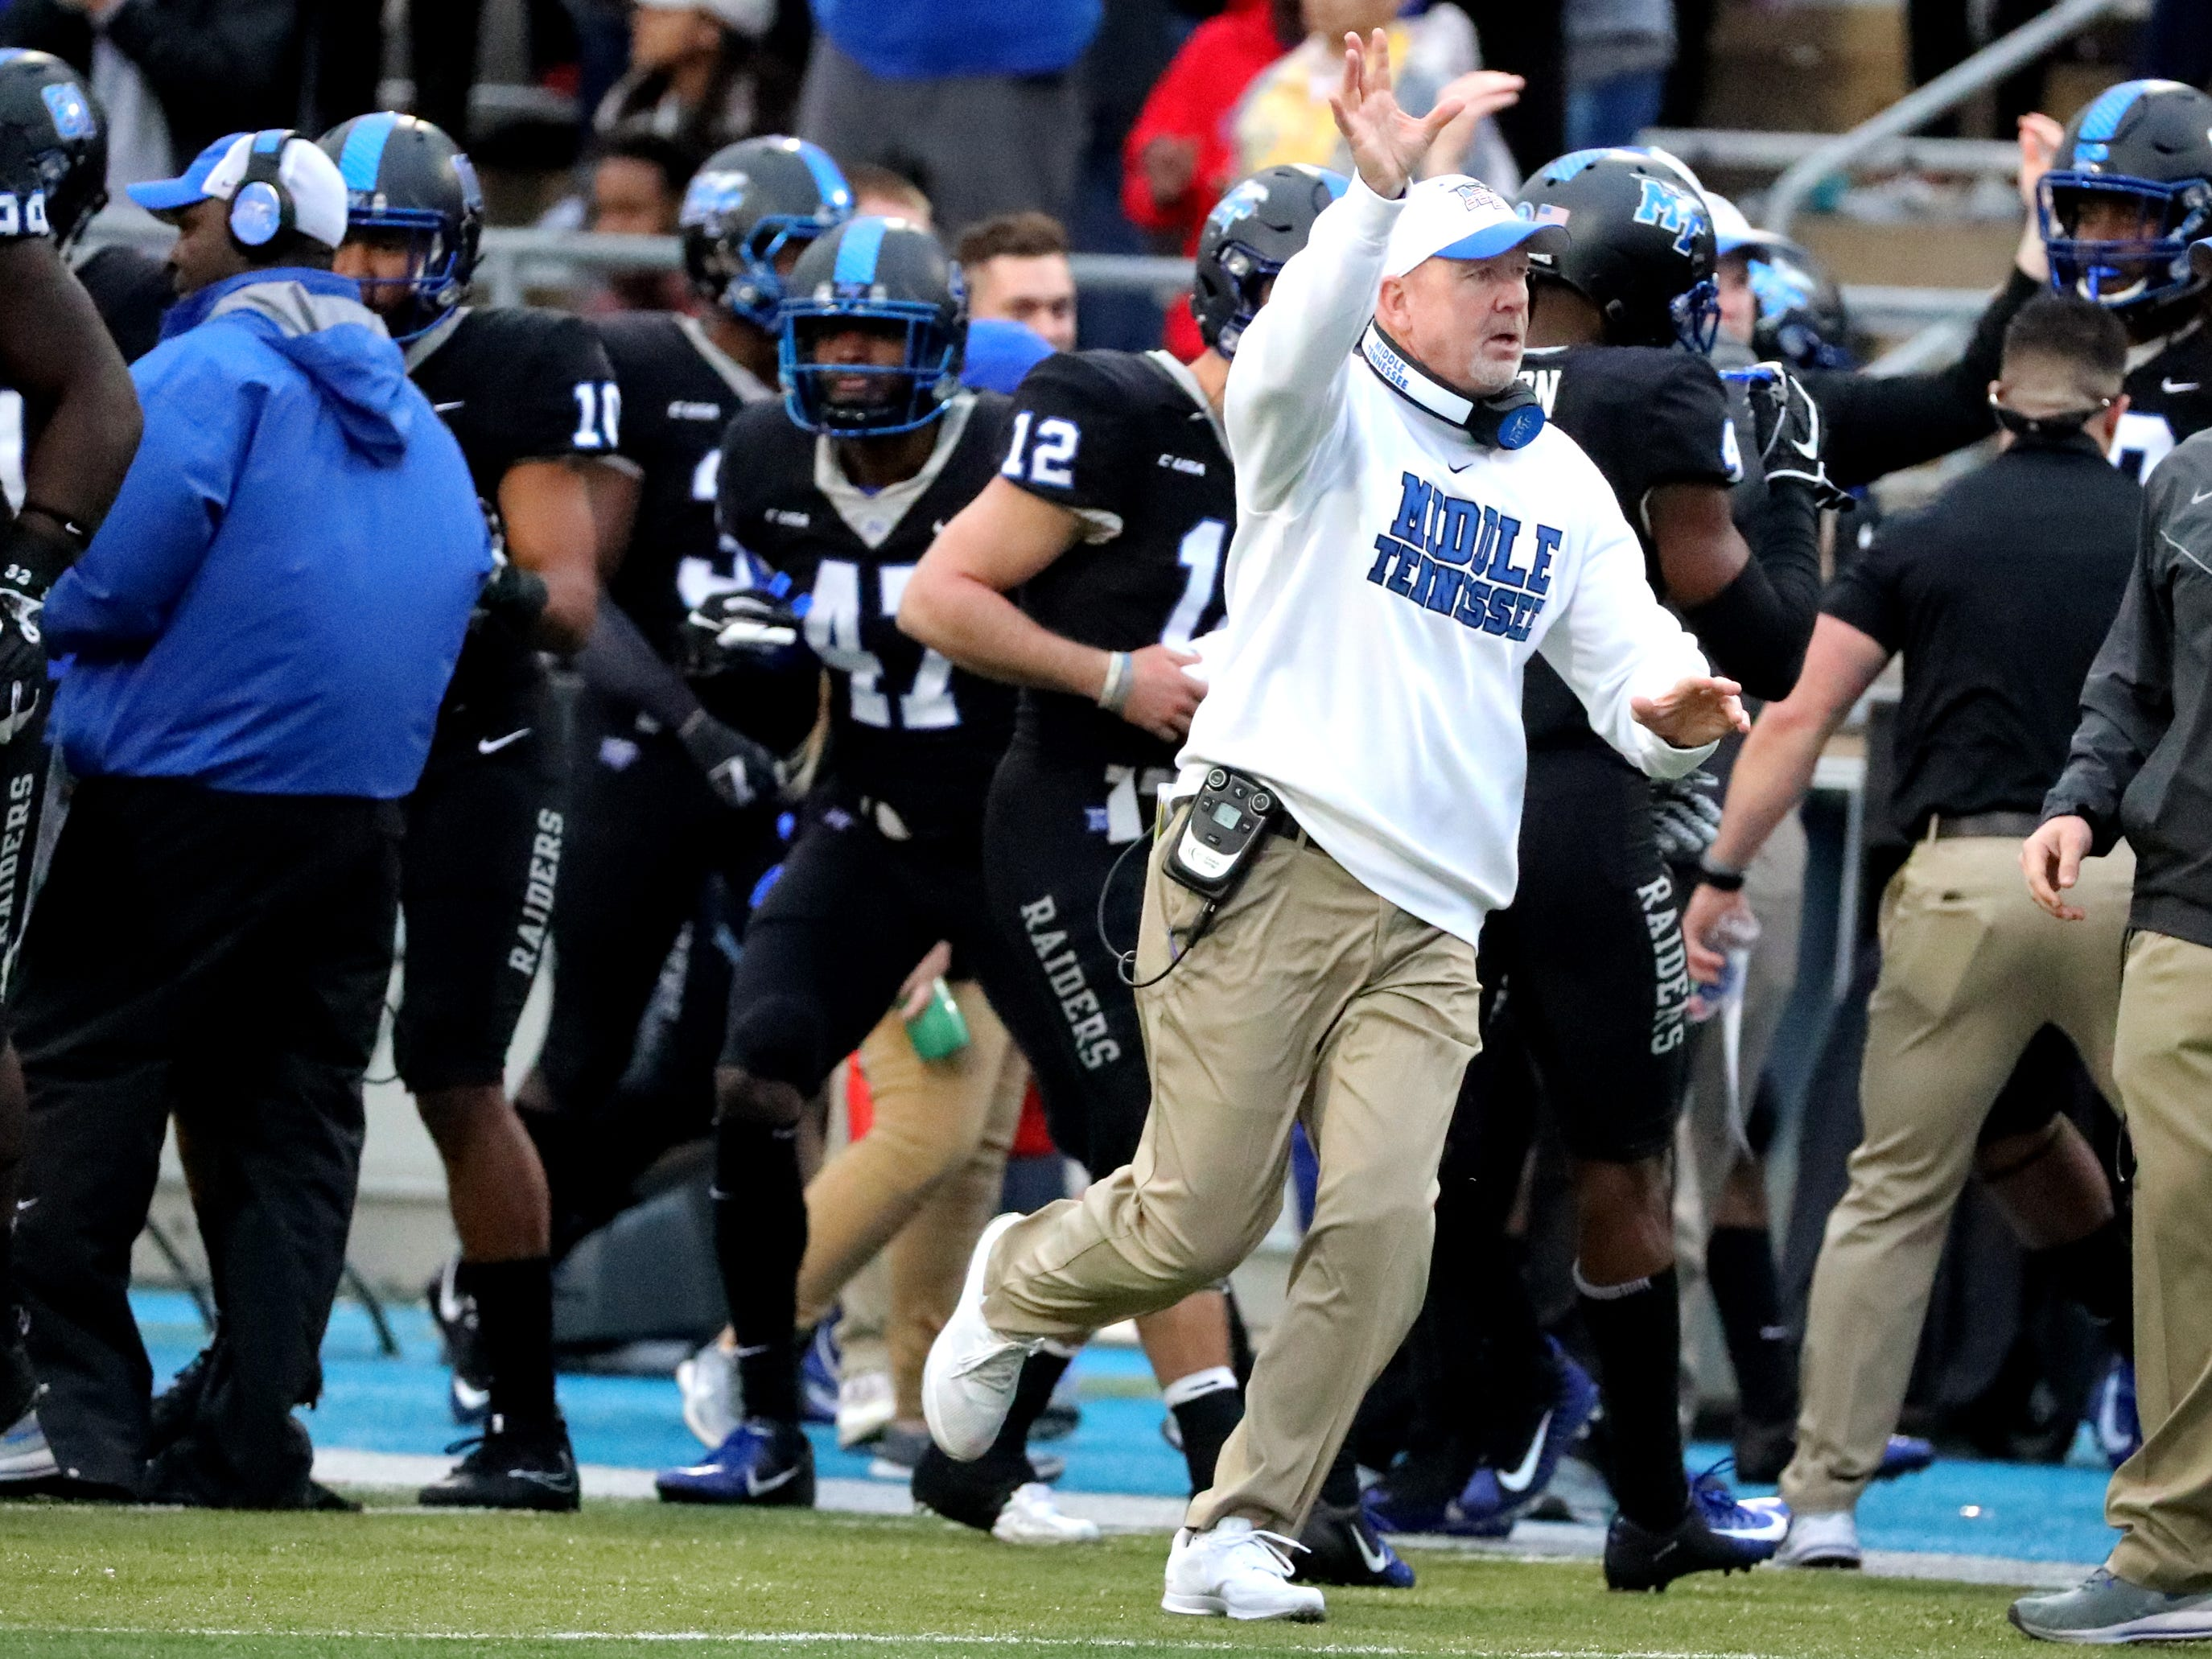 MTSU's head coach Rick Stockstill on the sidelines MTSU receives the ball from UAB during the Conference USA Championship at MTSU on Saturday, Dec. 1, 2018.